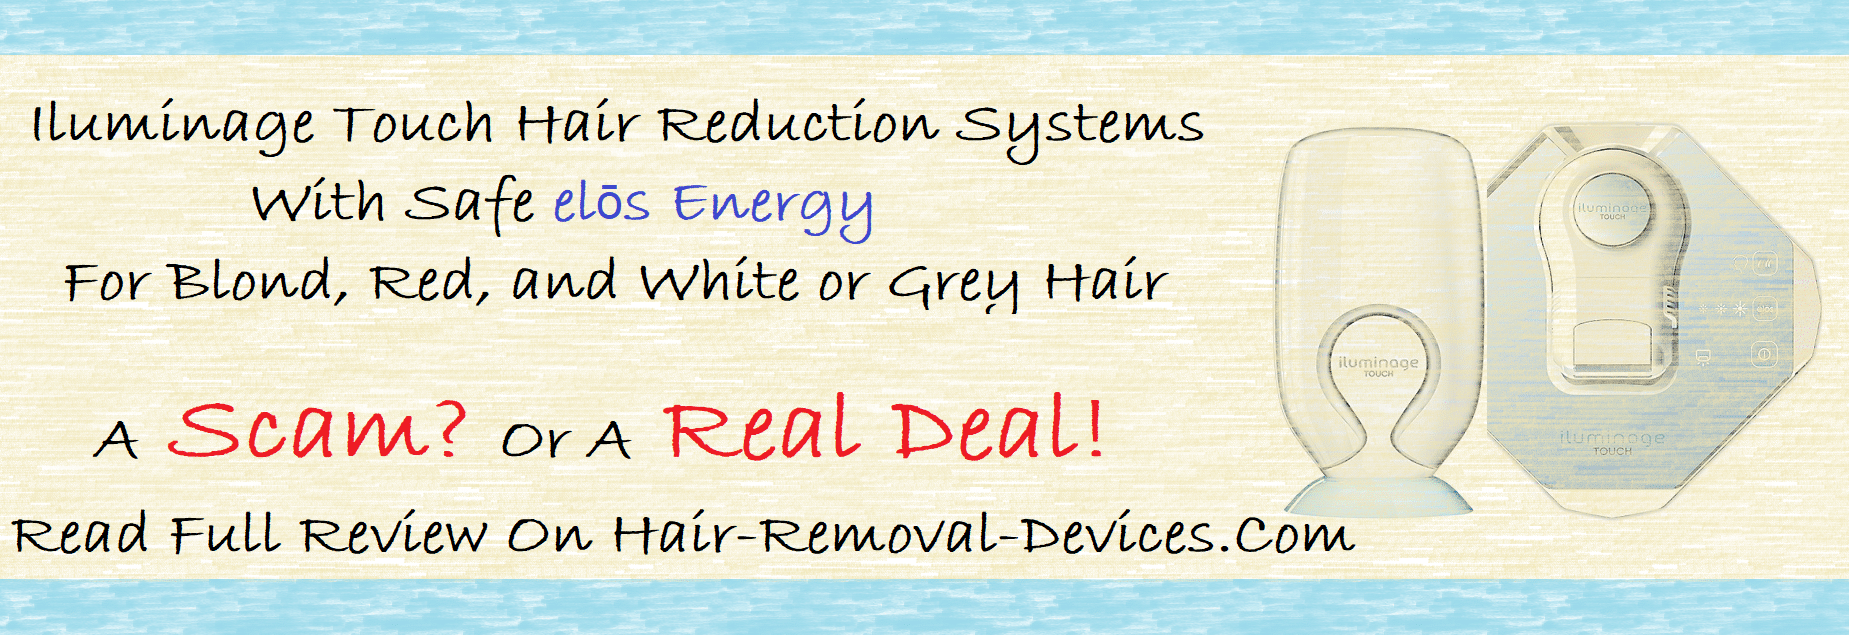 Iluminage Touch hair reduction systems overview